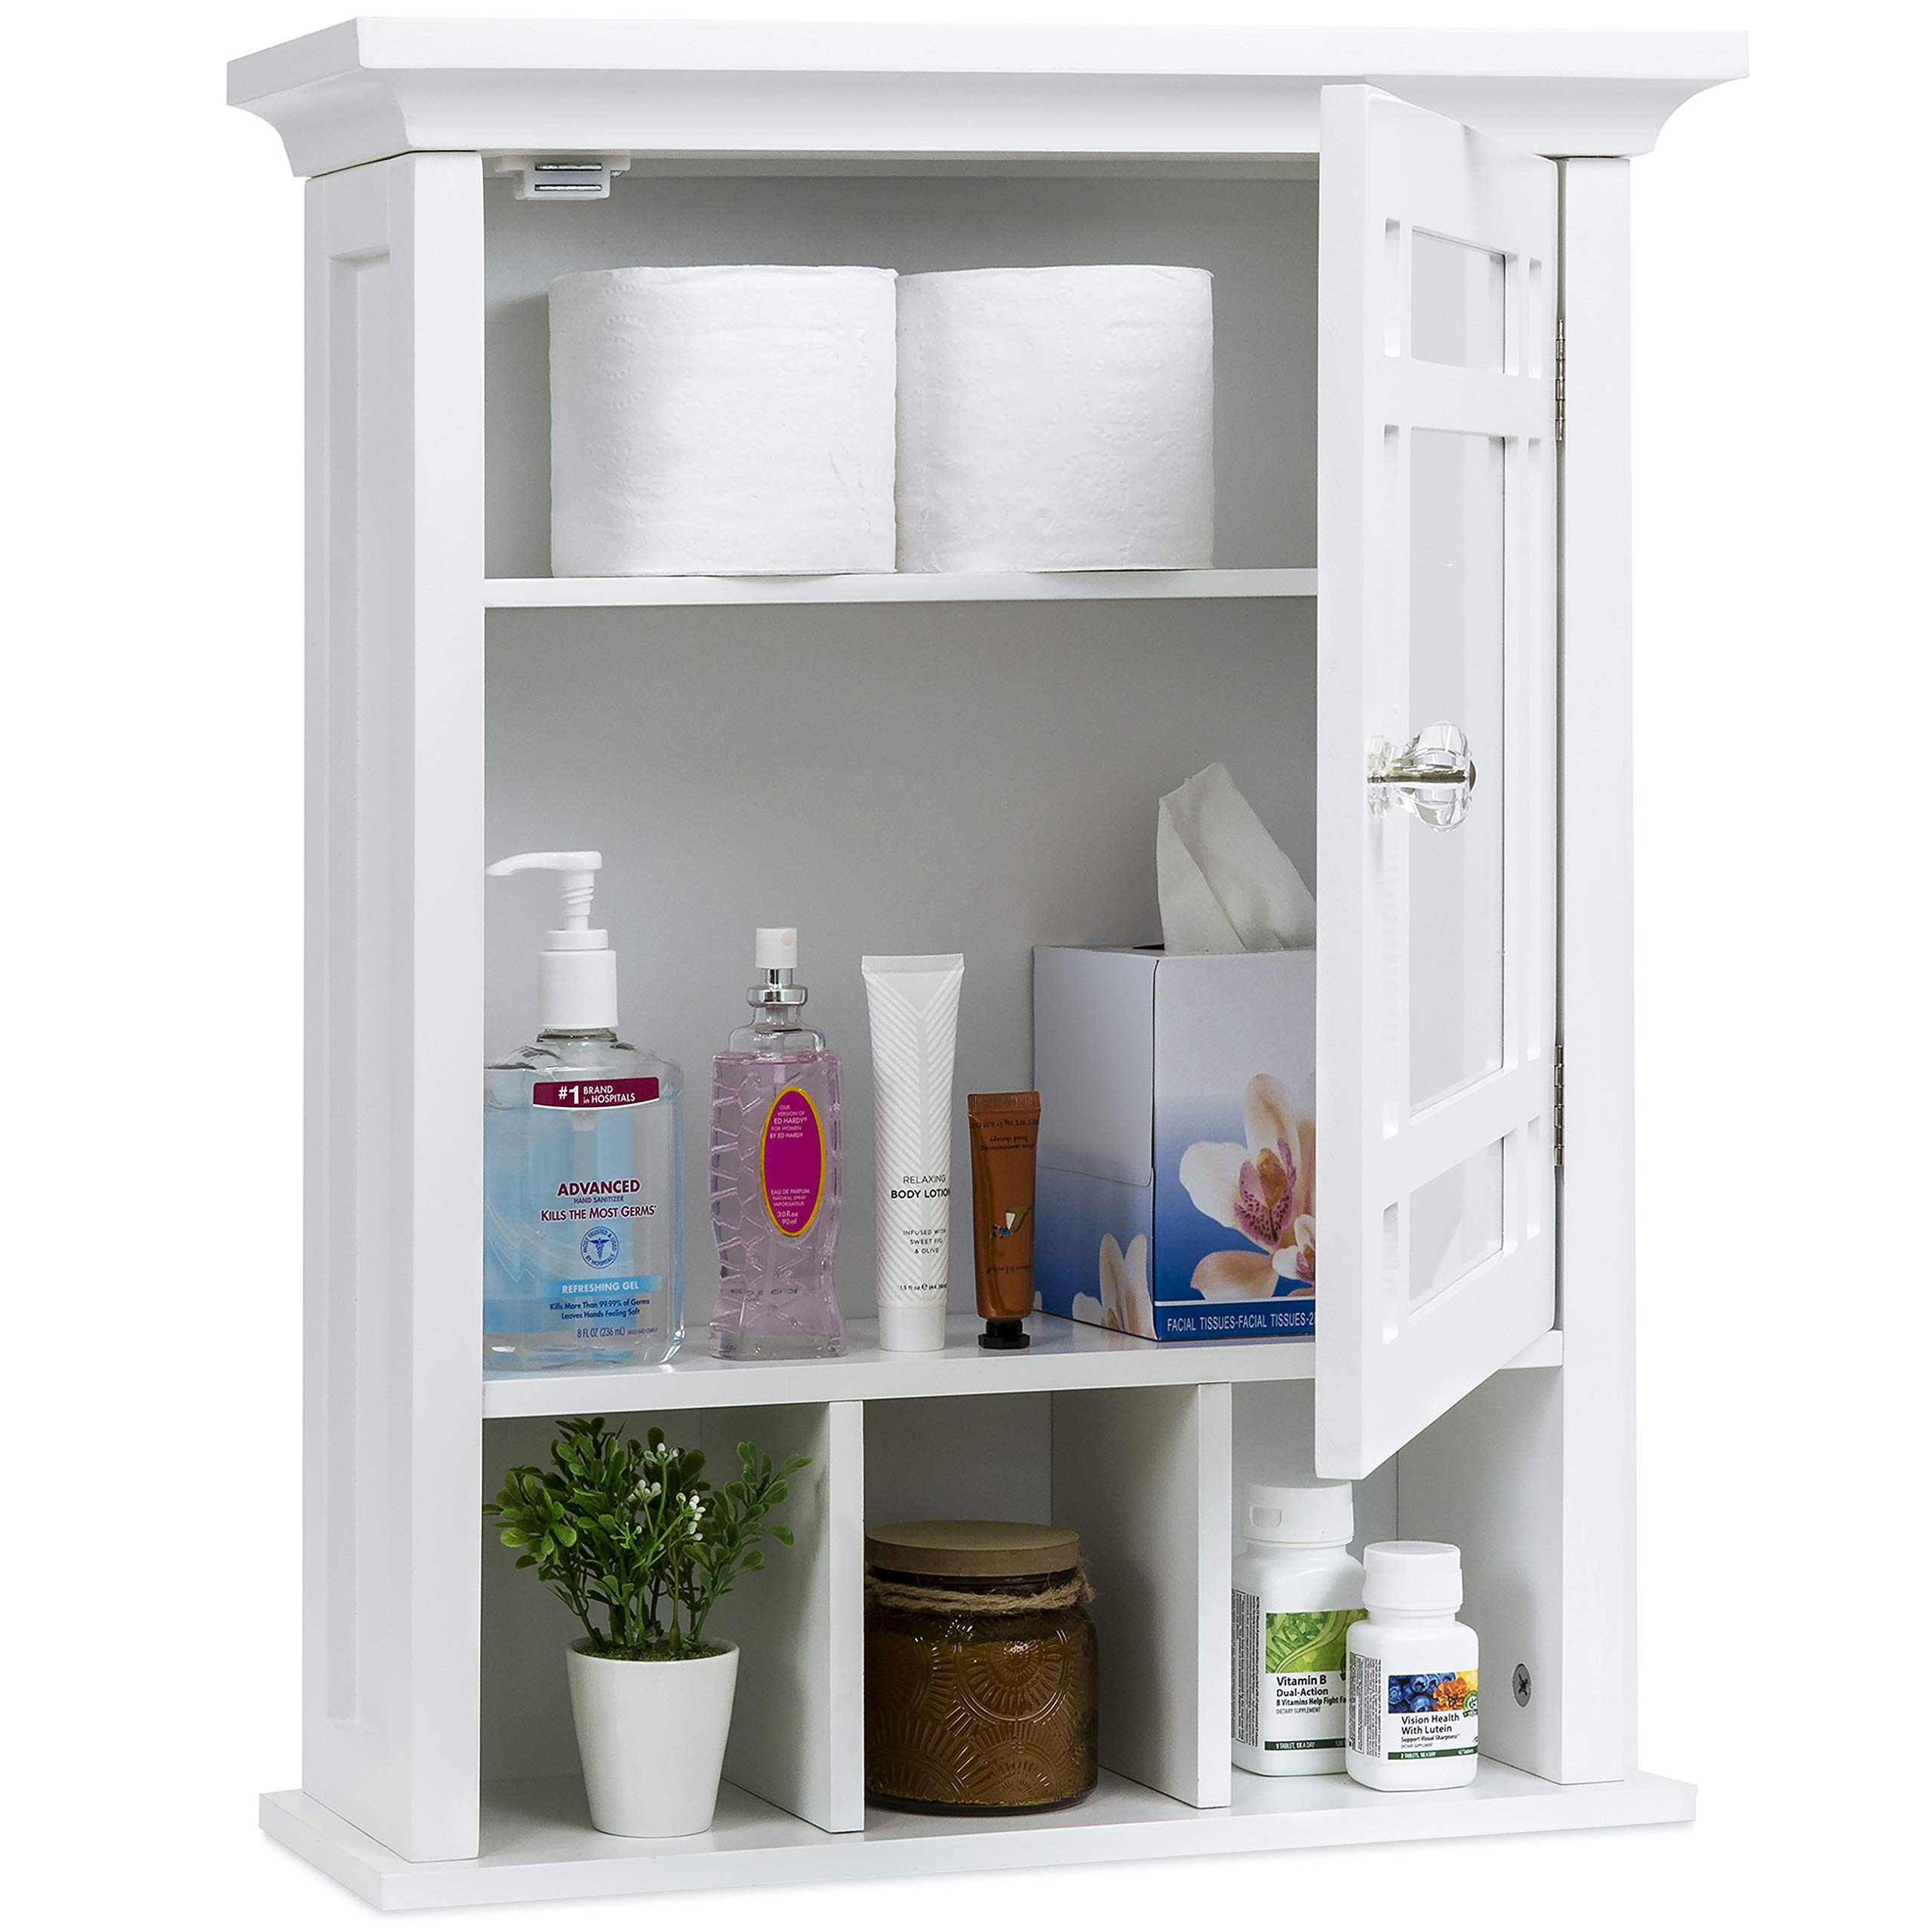 Best Choice Products Home Bathroom Vanity Mirror Wall Storage Cabinet, White by Best Choice Products